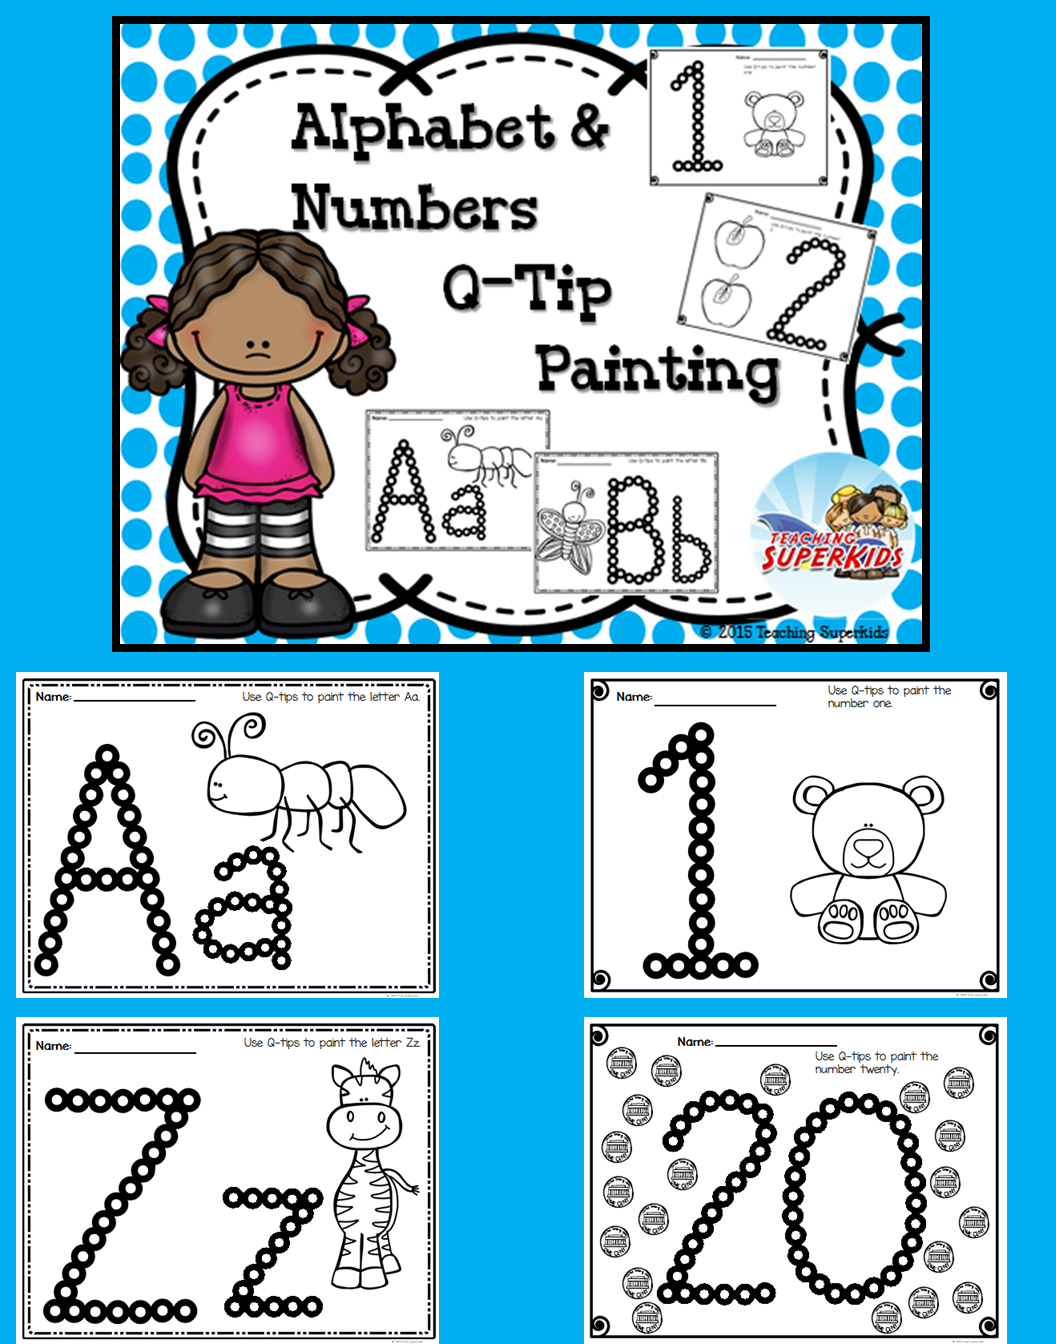 Alphabet and Number Q-Tip Painting, Fun for Pre-K, Kinders and